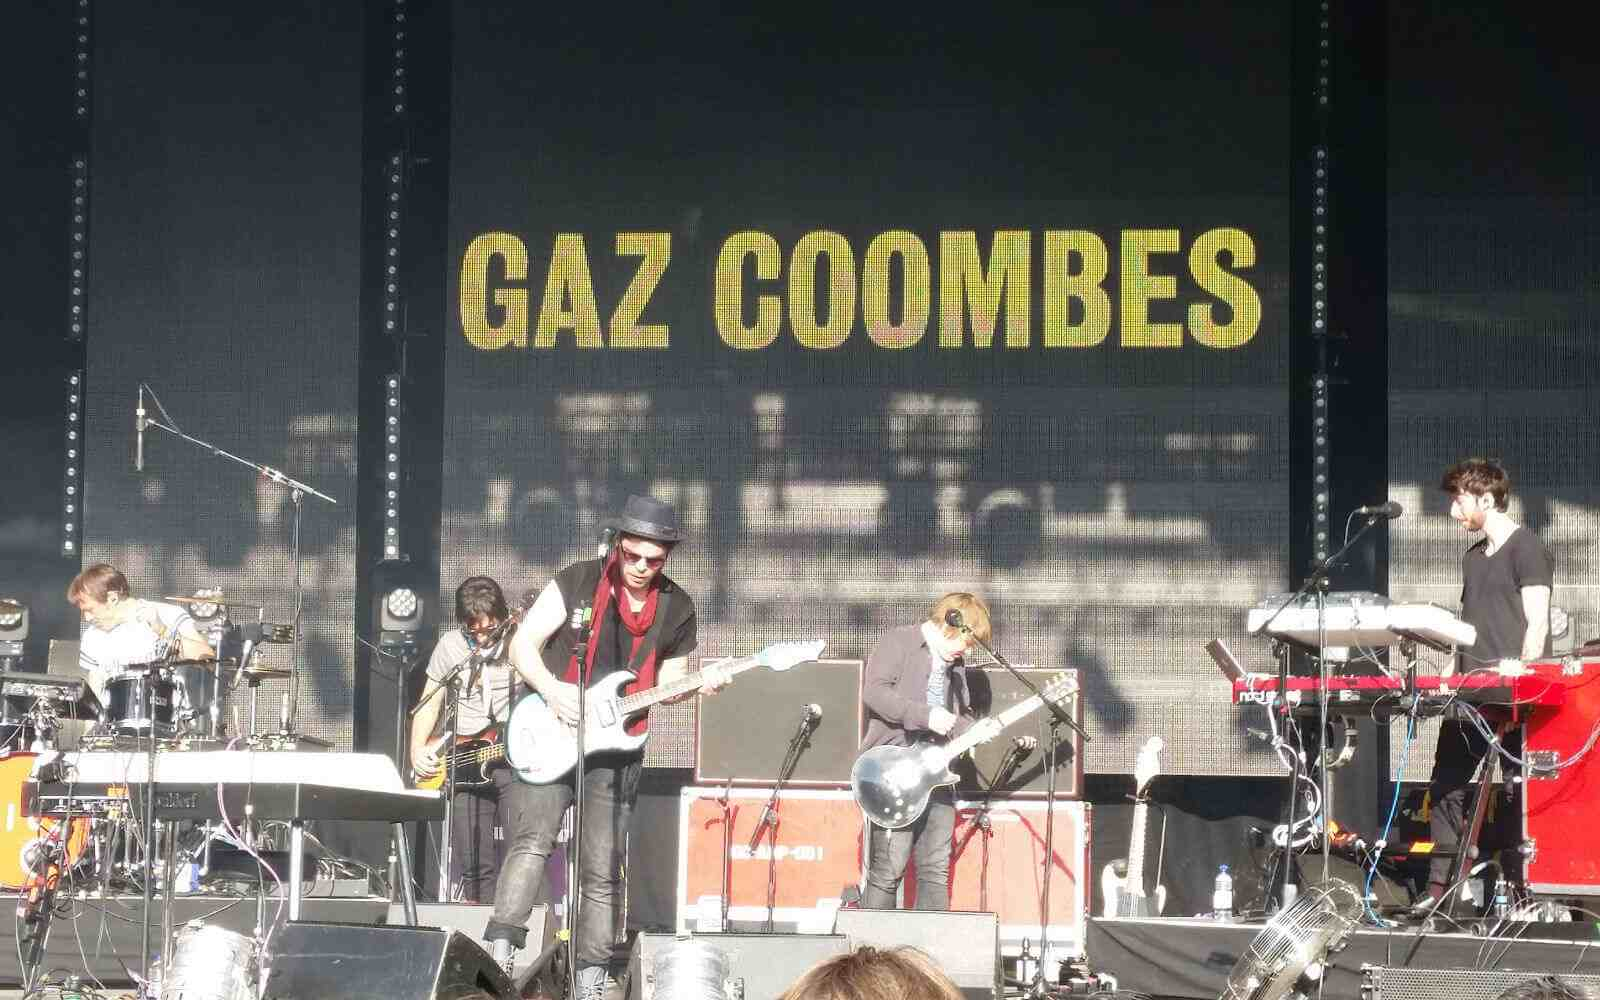 Gaz Coombes performing at Festival no. 6 2015